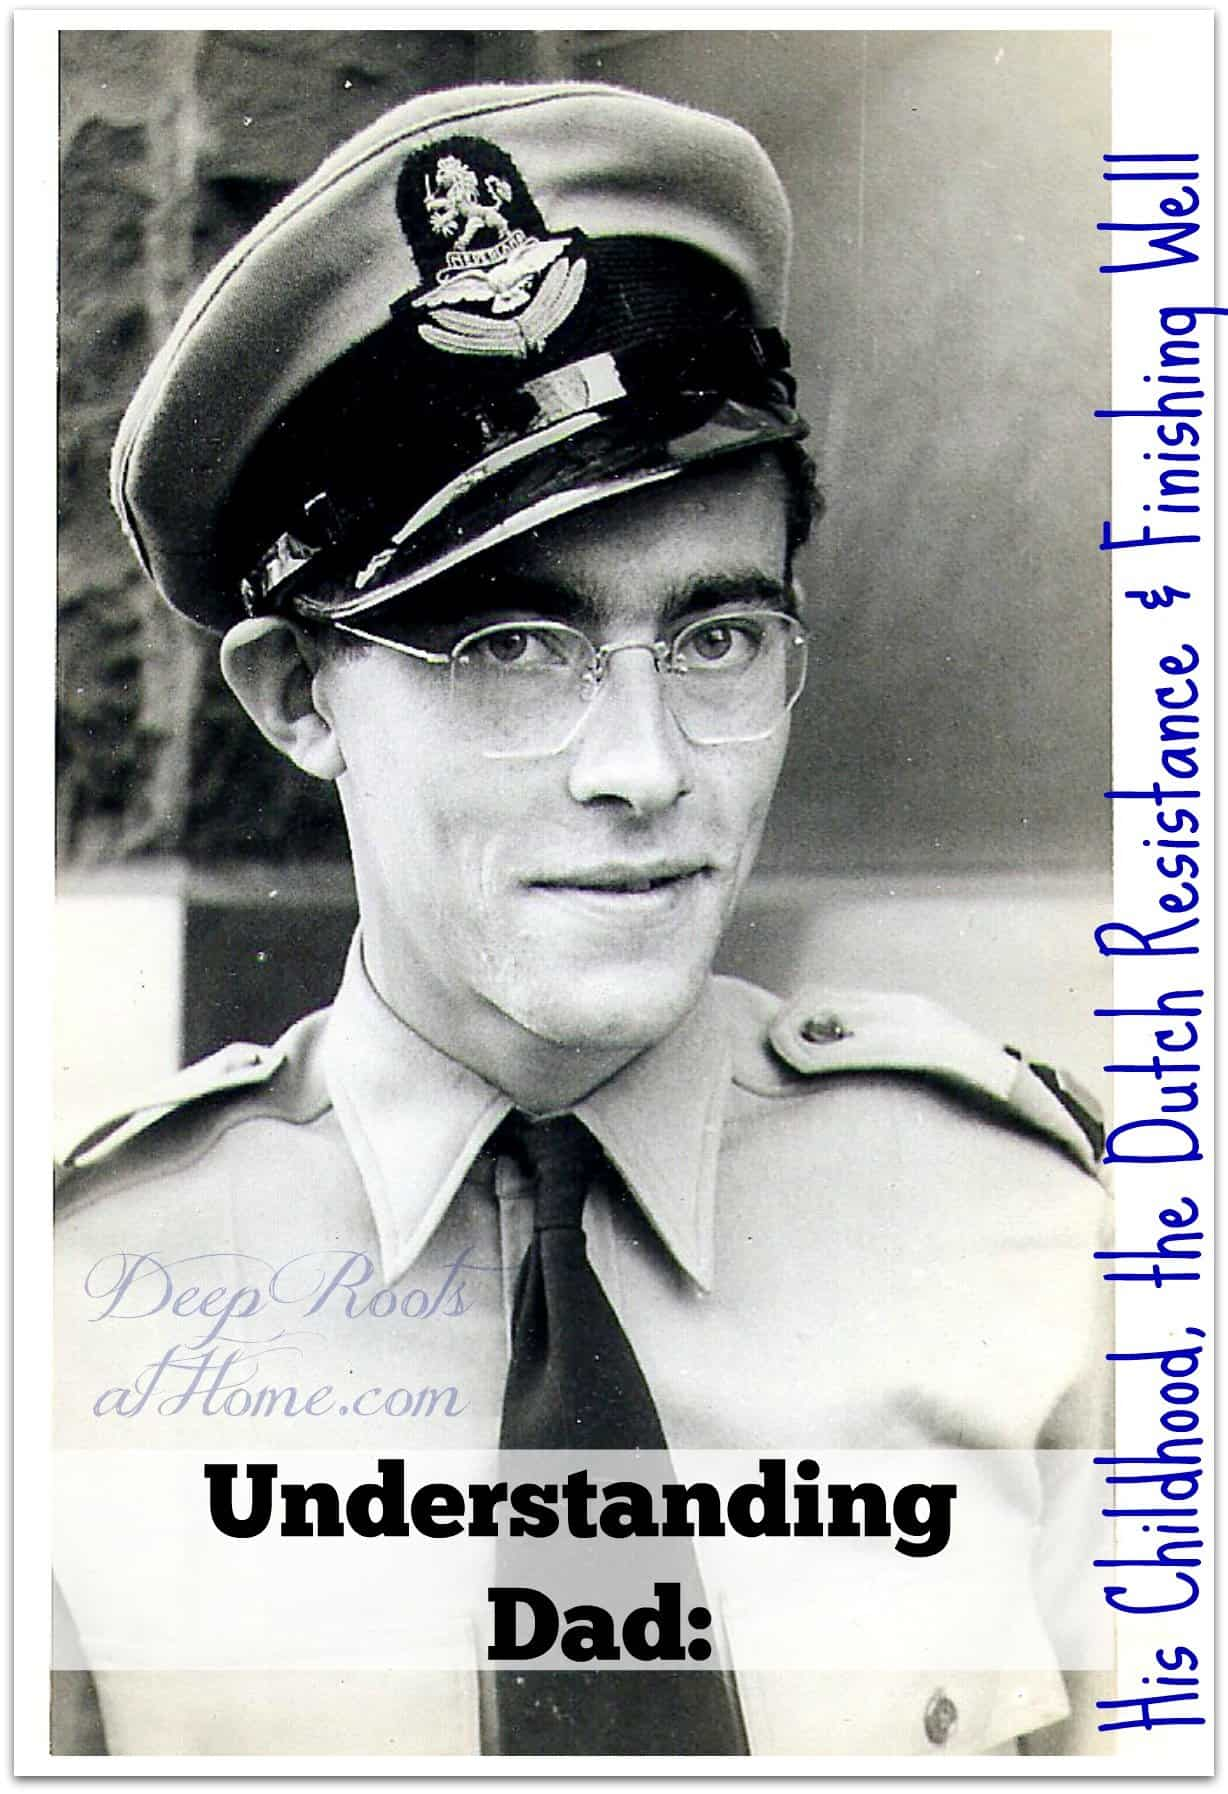 Understanding Dad: His Childhood, the Dutch Resistance & Finishing Well. My father in uniform